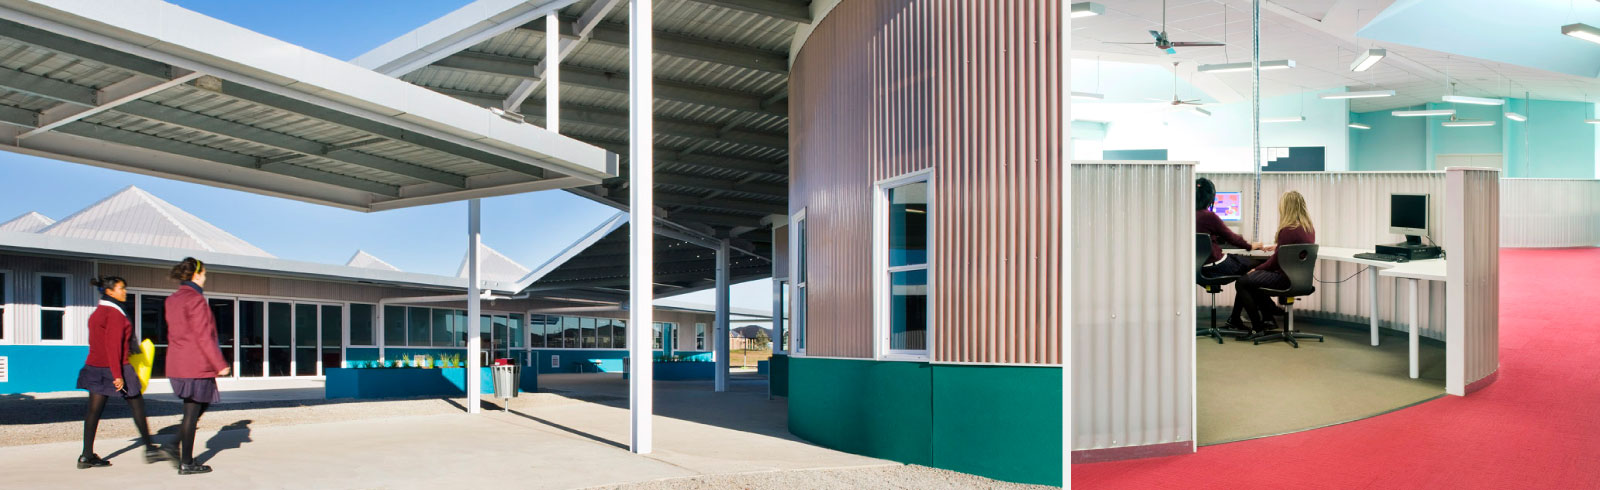 H2o-Architects-Melbourne-Point-Cook-Secondary-College-04